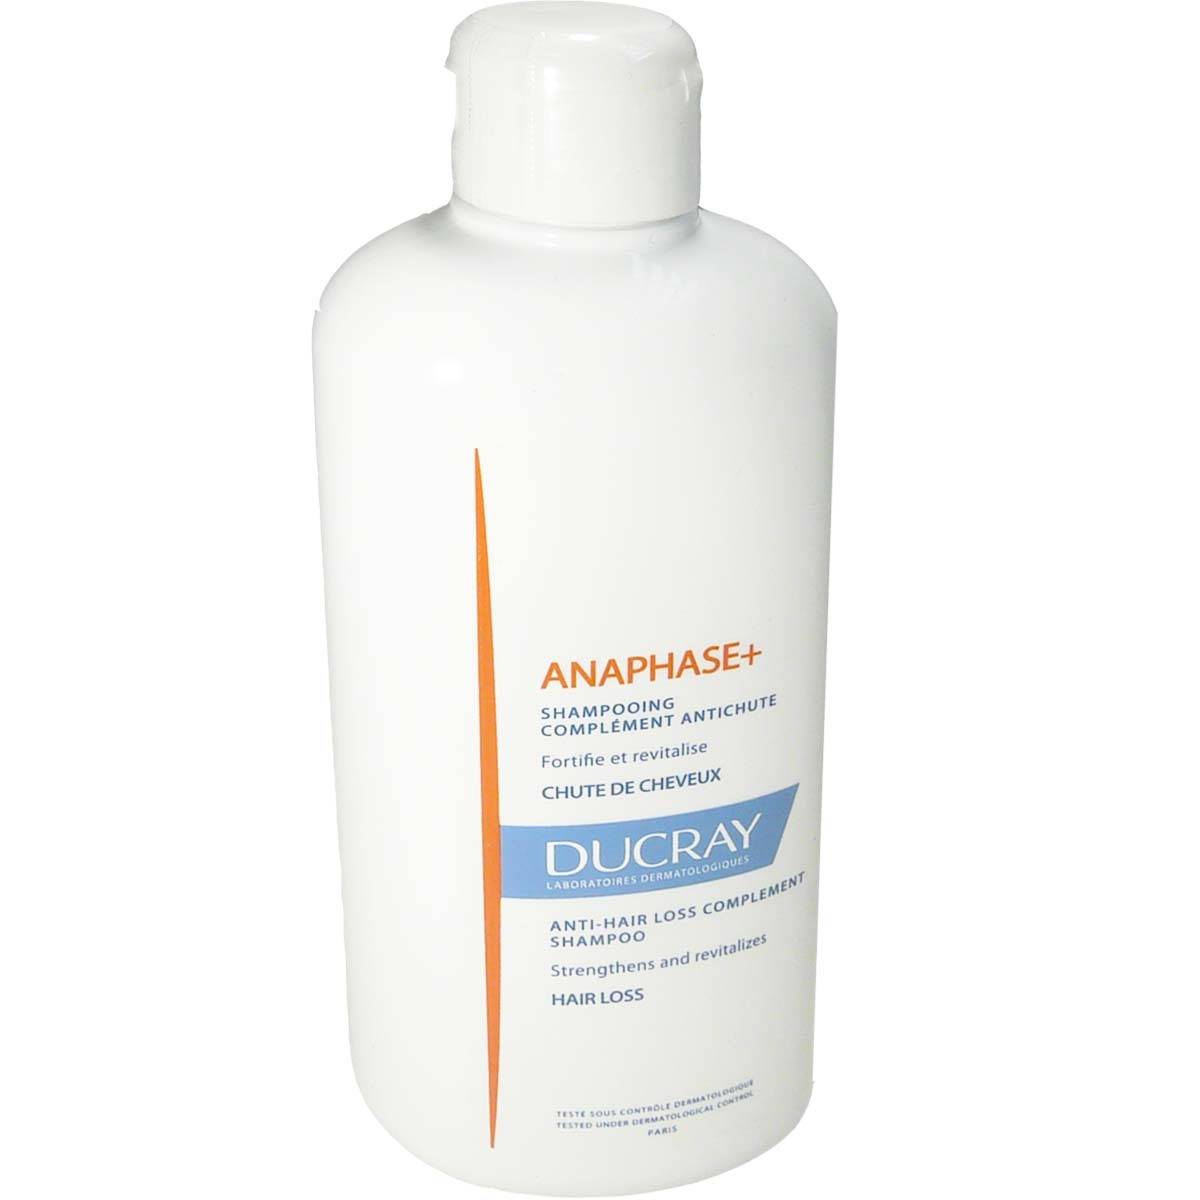 Ducray anaphase+ shampooing complement anti-chut 400ml